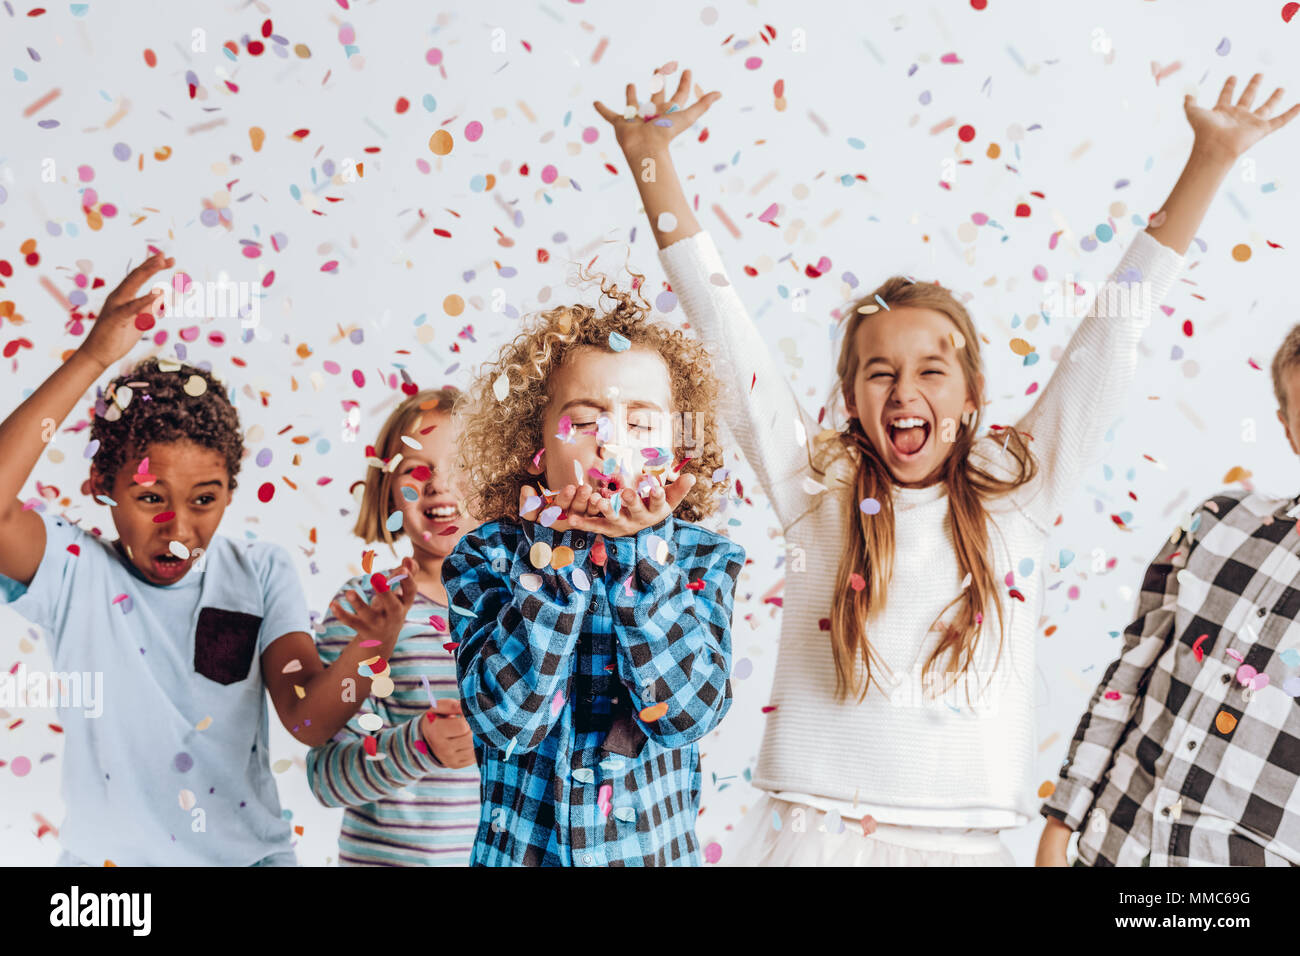 Happy kids having fun in a room full of confetti - Stock Image